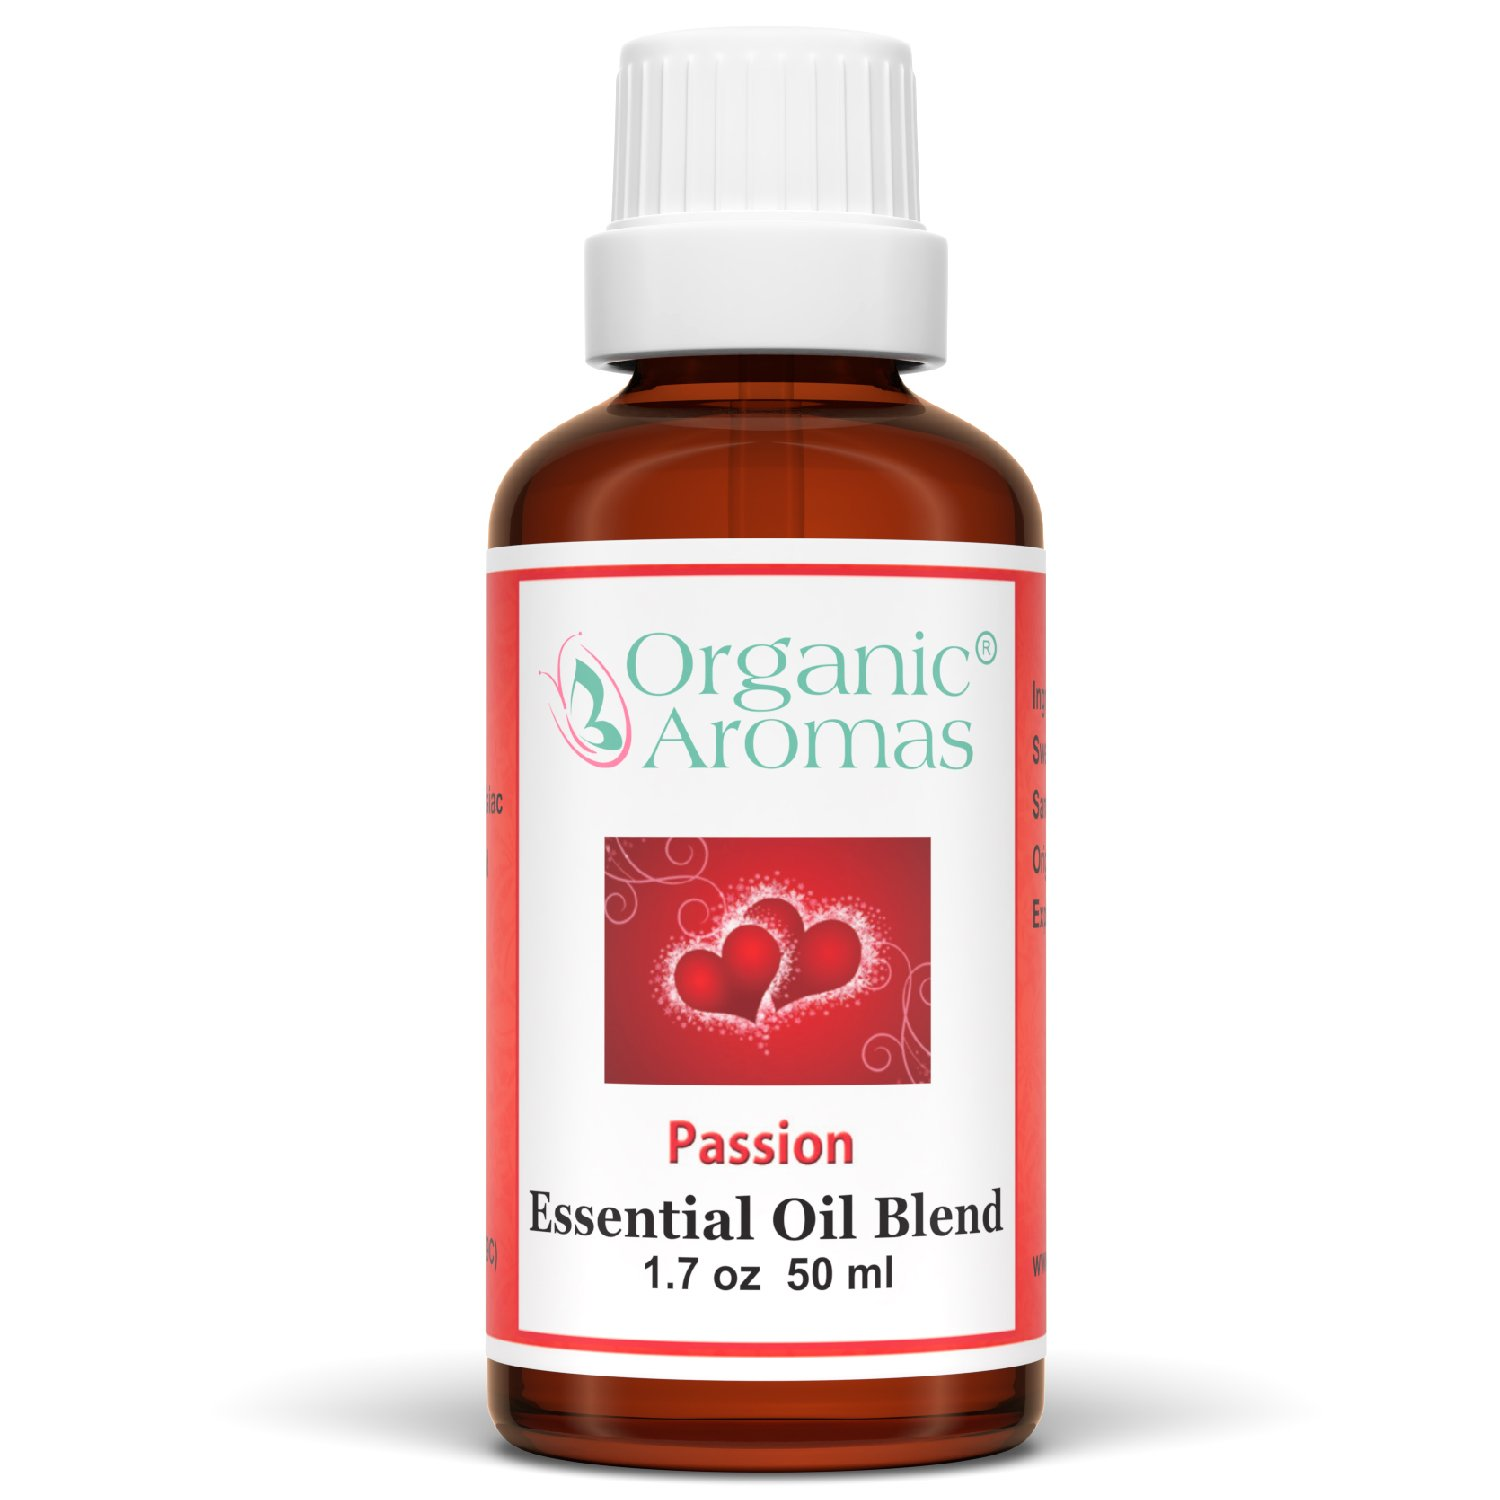 Passion Essential Oil Blend 100% Pure for Aromatherapy - Therapeutic Grade - Works well with Organic Aroma Diffusers - 50 ml bottles